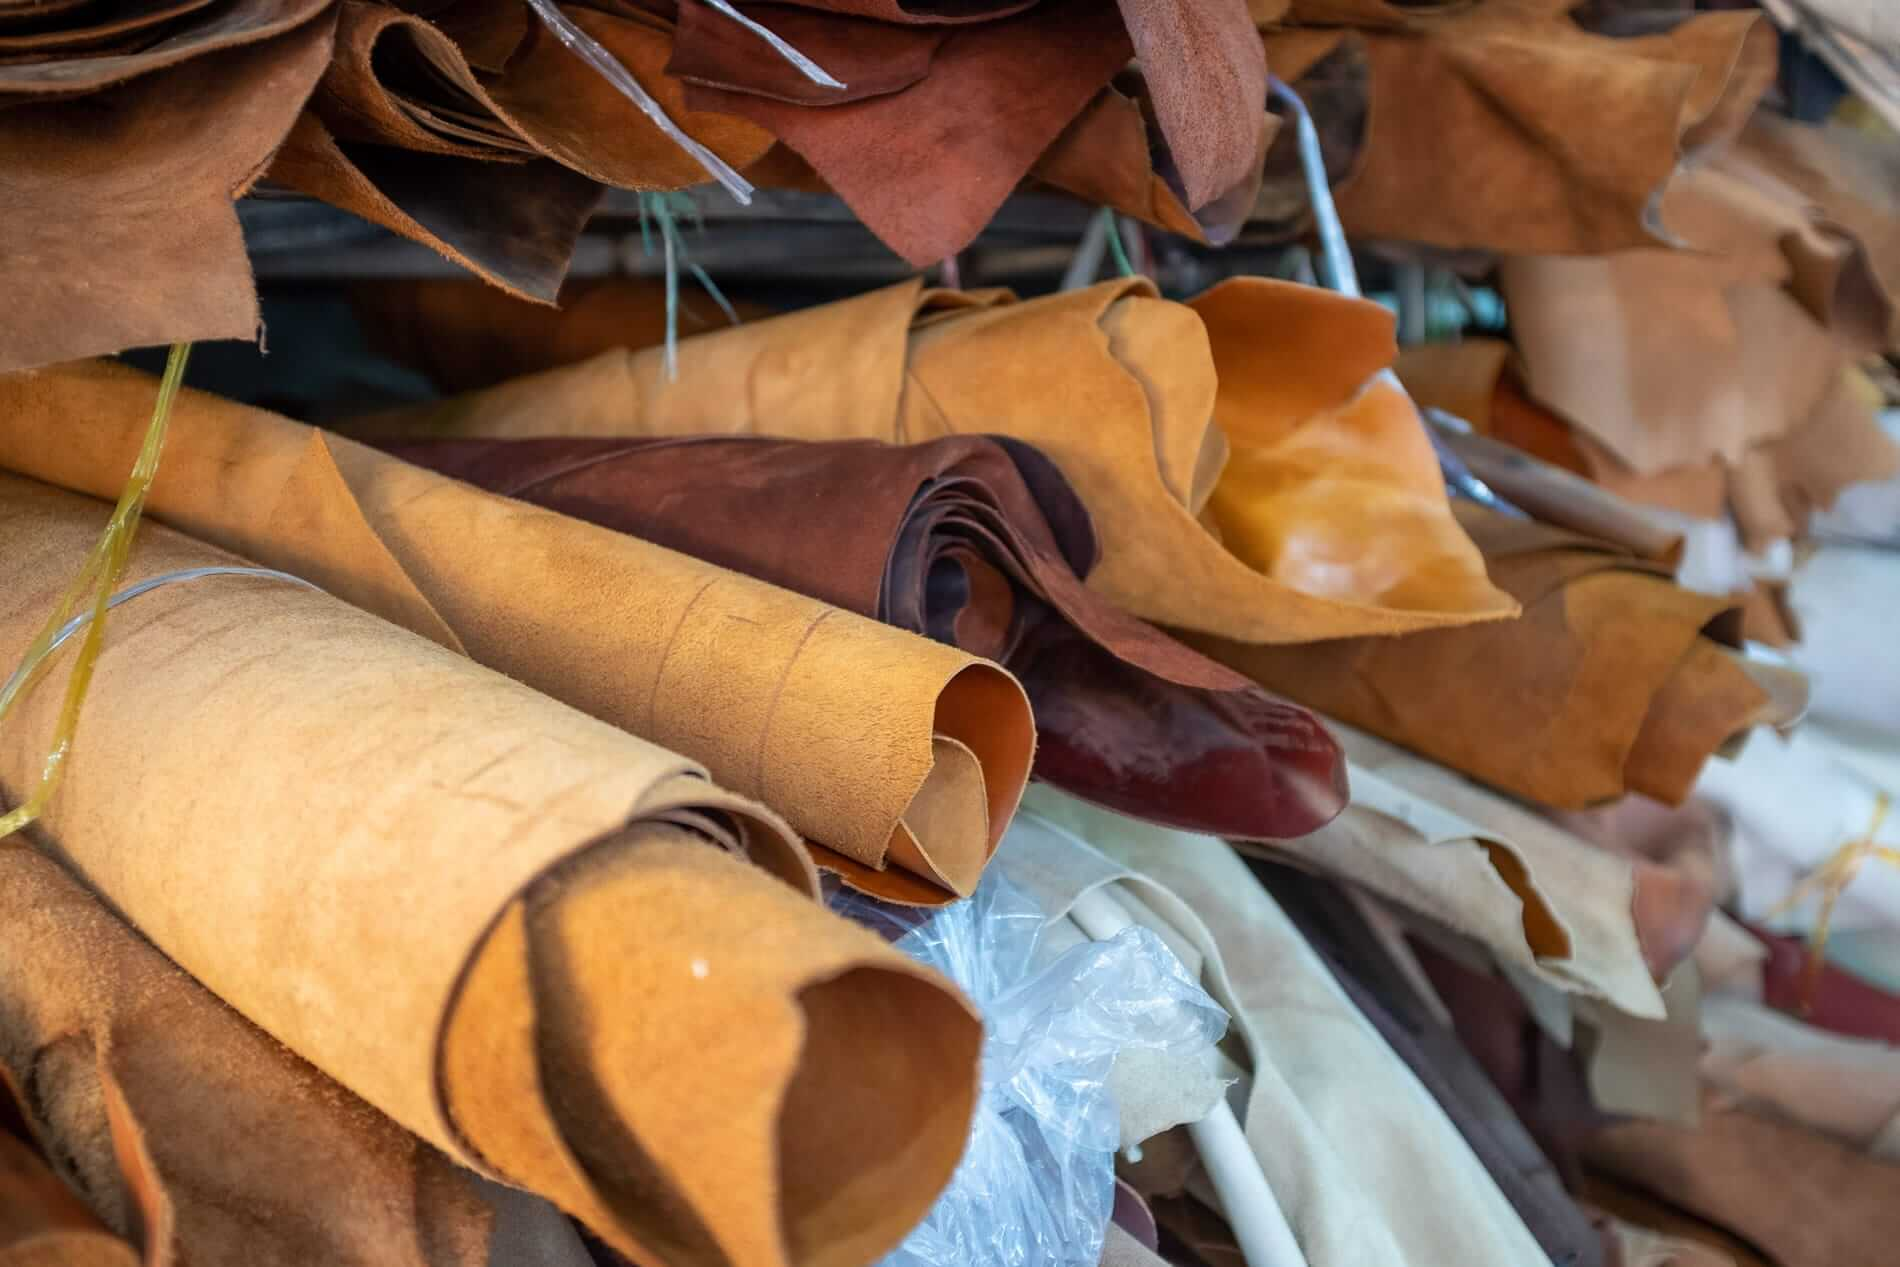 Shelves of raw leather